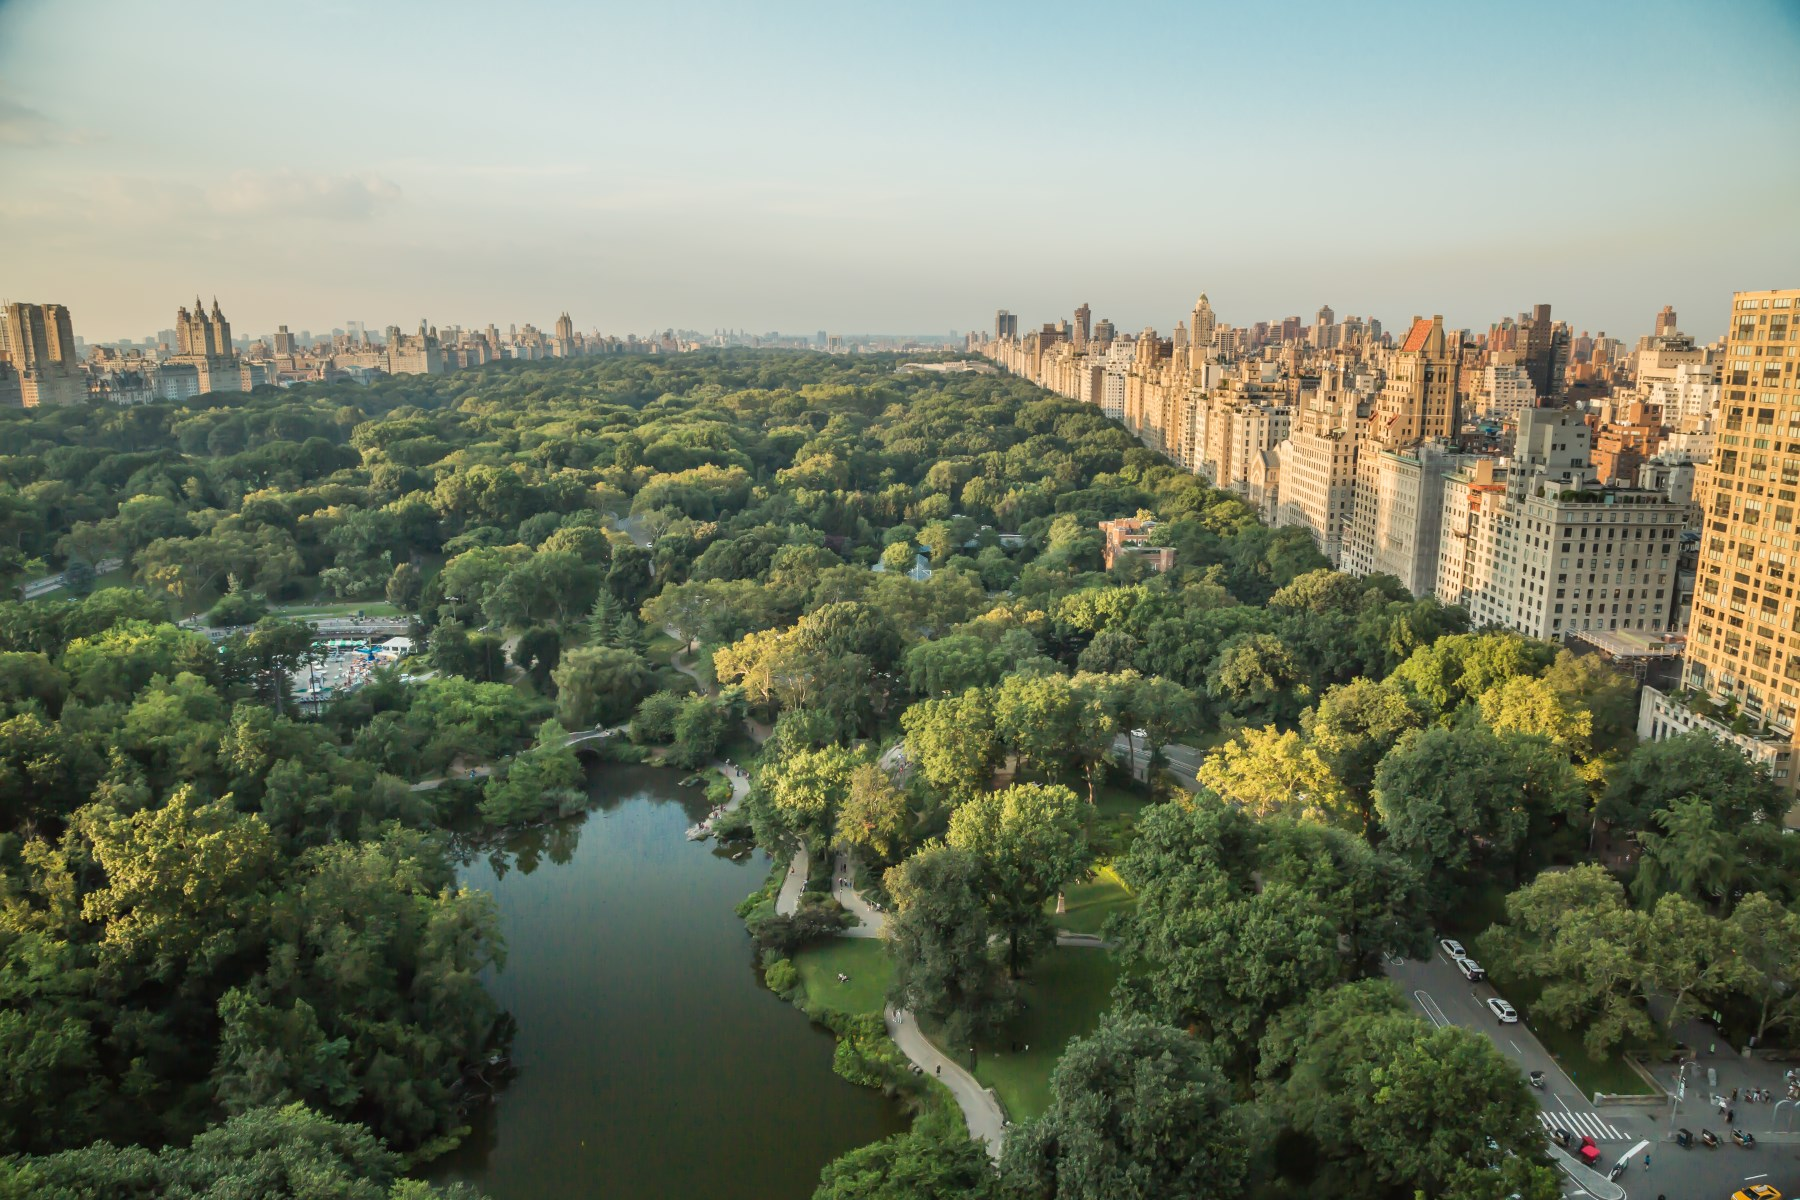 Condominium for Sale at 1 Central Park South APT 2003 1 Central Park South PH 2003 Midtown West, New York, New York, 10019 United States